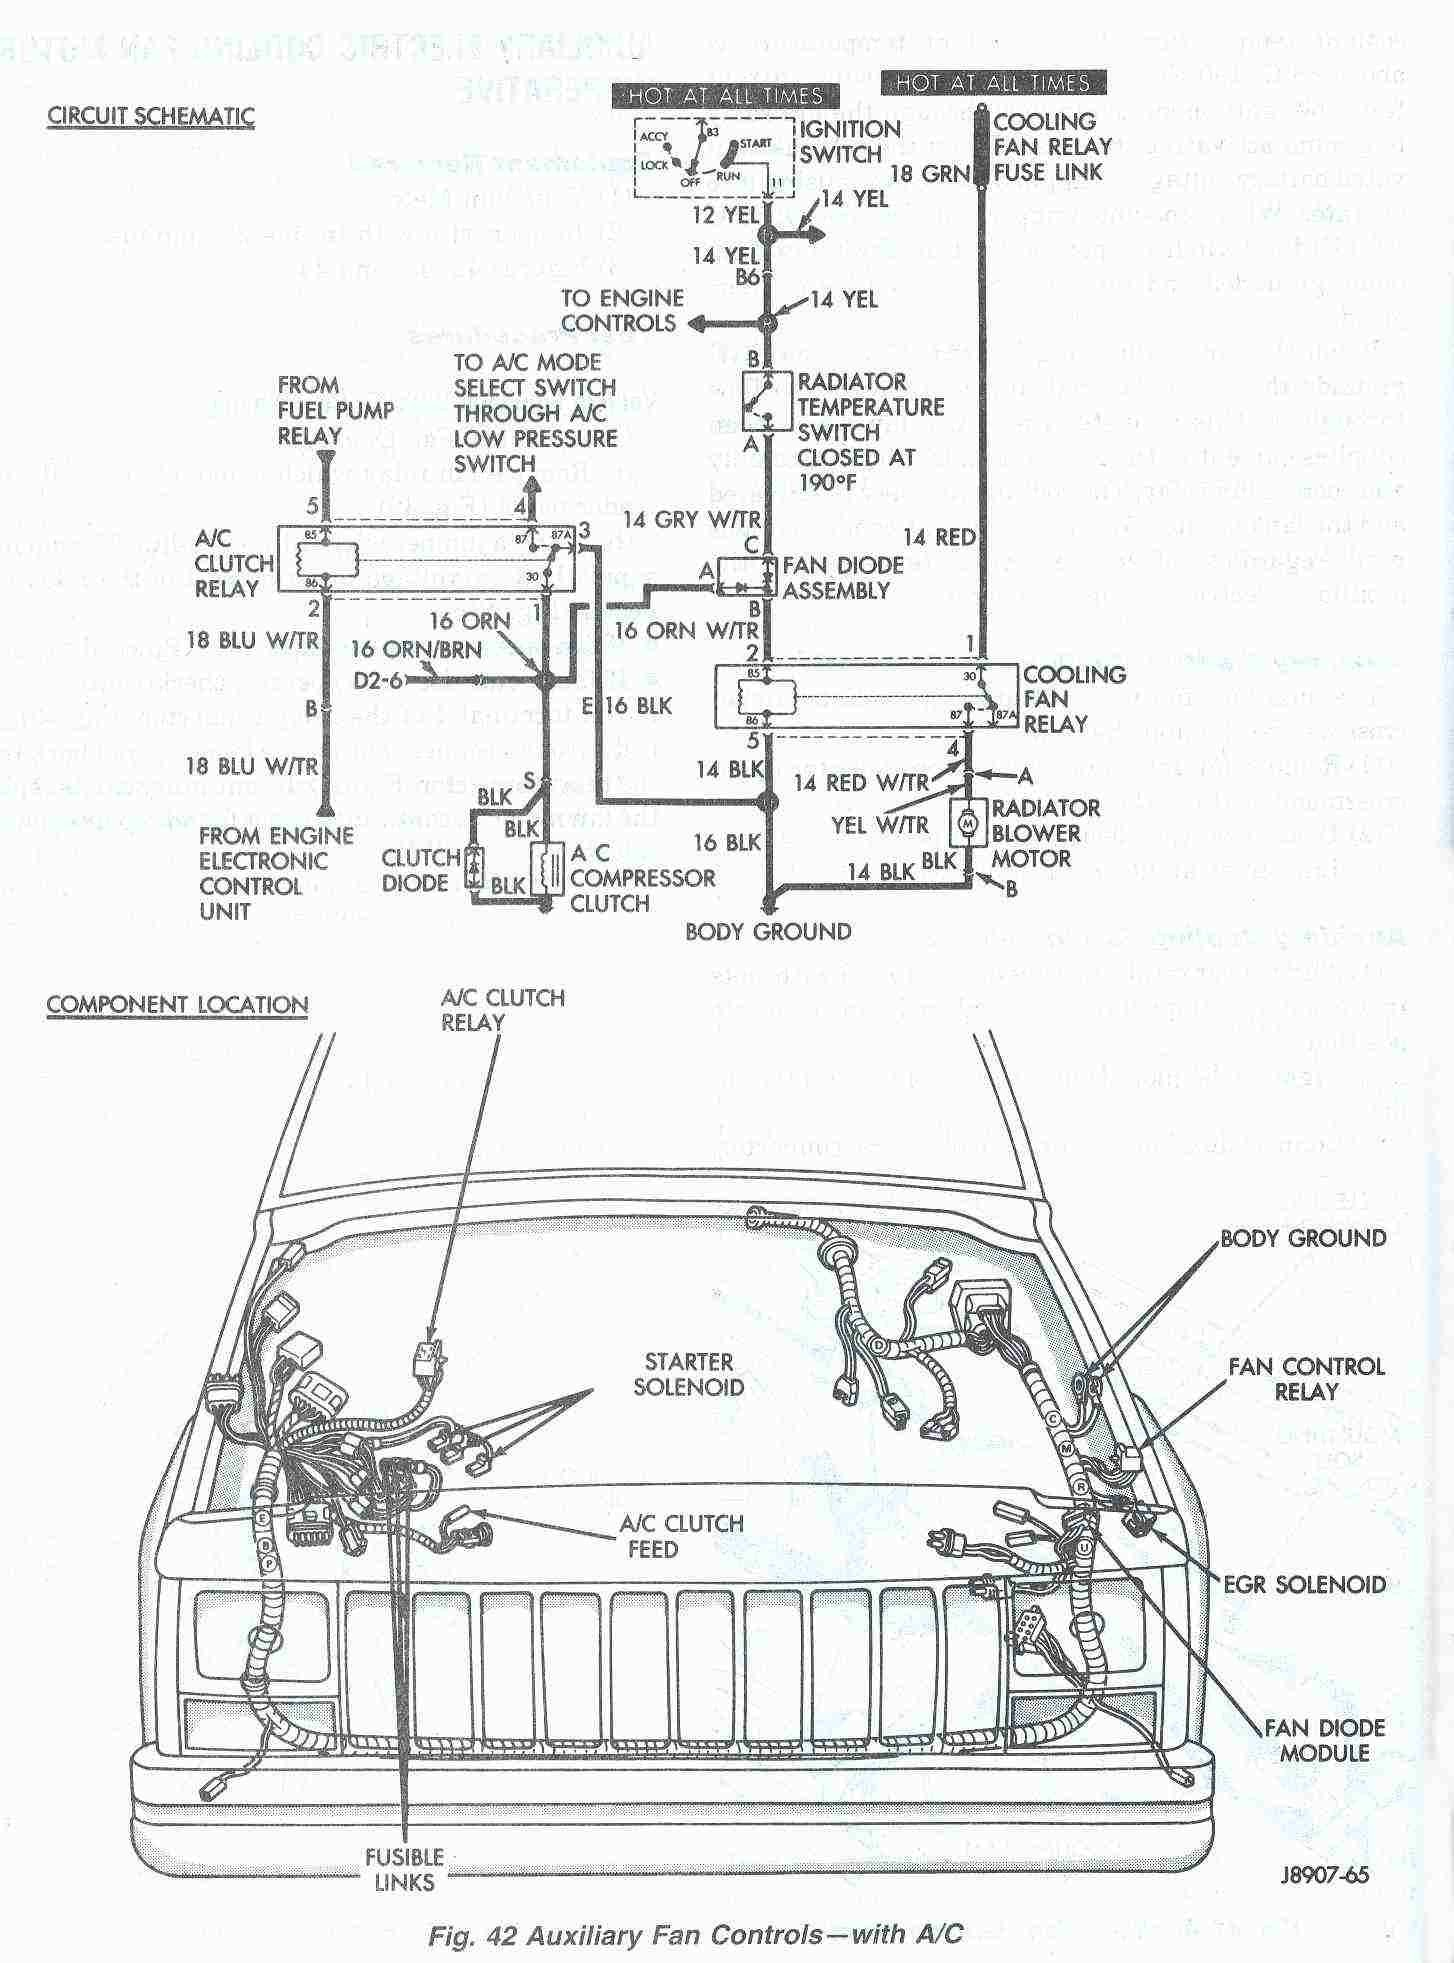 2002 Jeep Grand Cherokee Engine Diagram 2 Jeep Grand Cherokee Wiring Diagram Image Of 2002 Jeep Grand Cherokee Engine Diagram 2 Wiring Diagram Jeep Grand Cherokee Laredo Fresh Jeep Cherokee Pcm